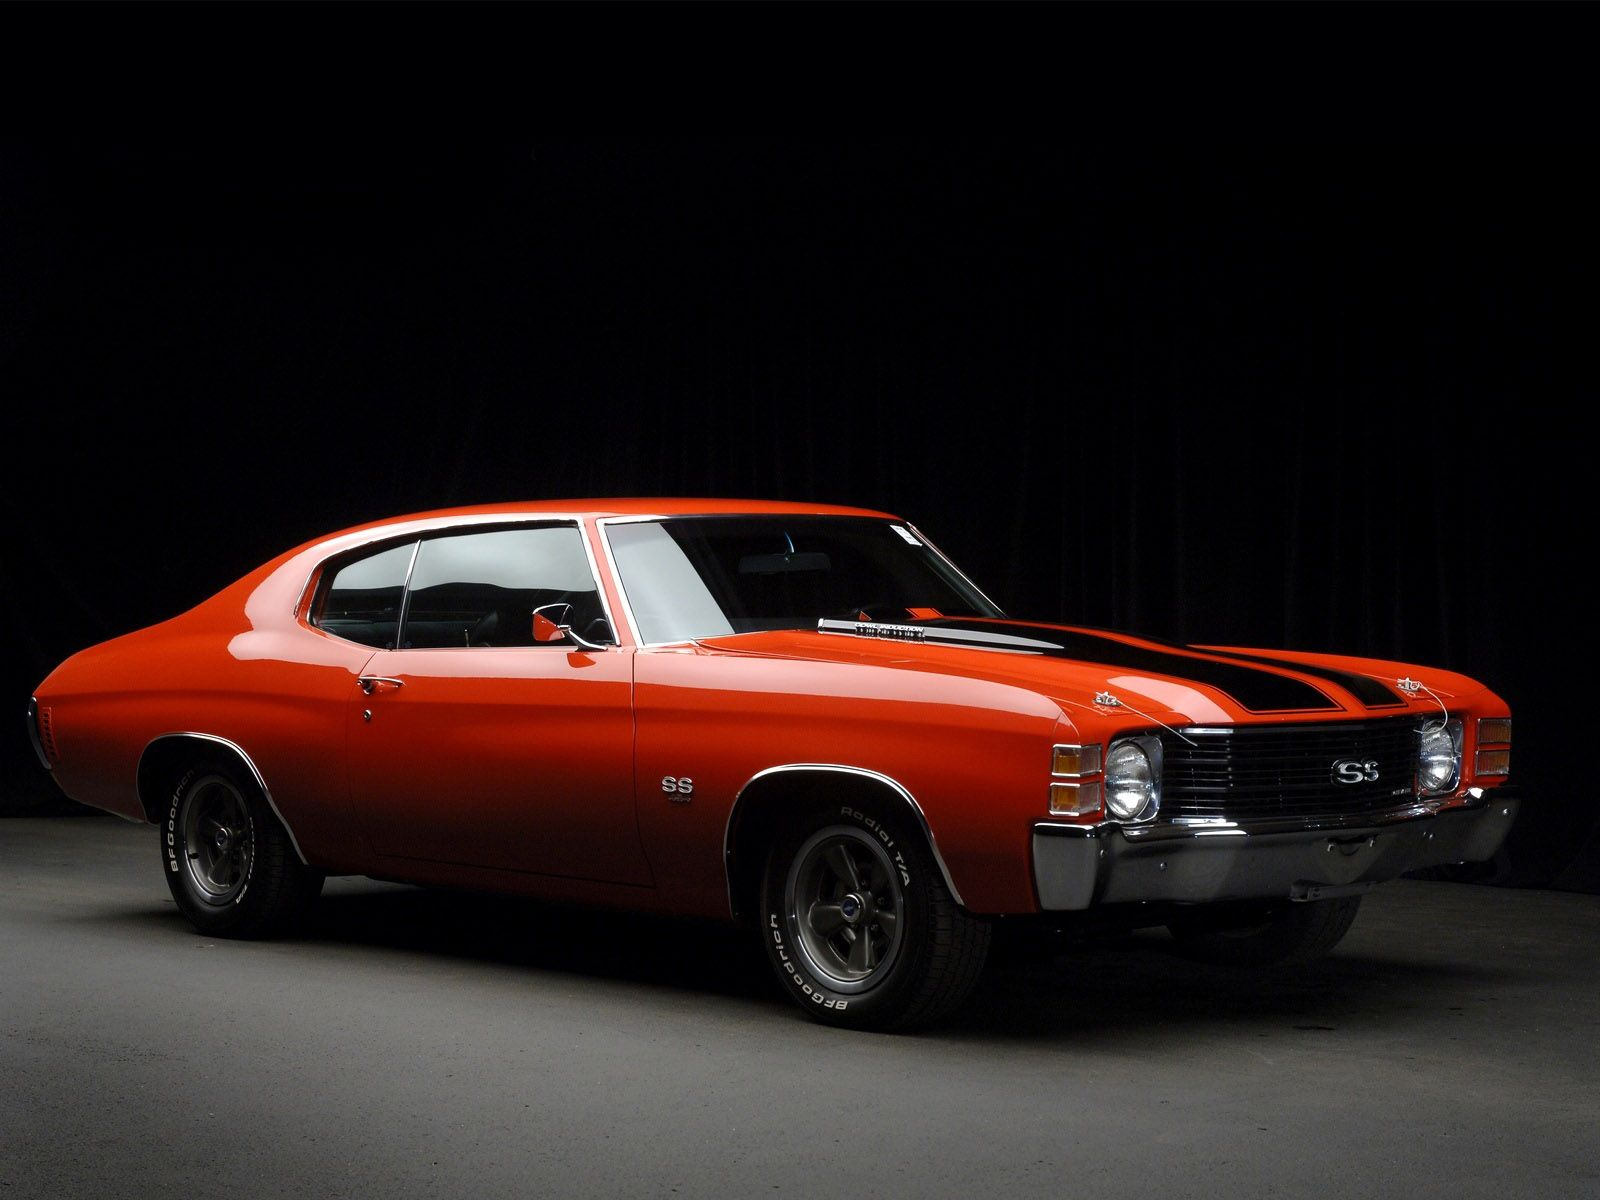 Chevelle Ss Wallpaper 1969 Chevelle Ss Muscle Car Wallpaper If I Were A Car Guy